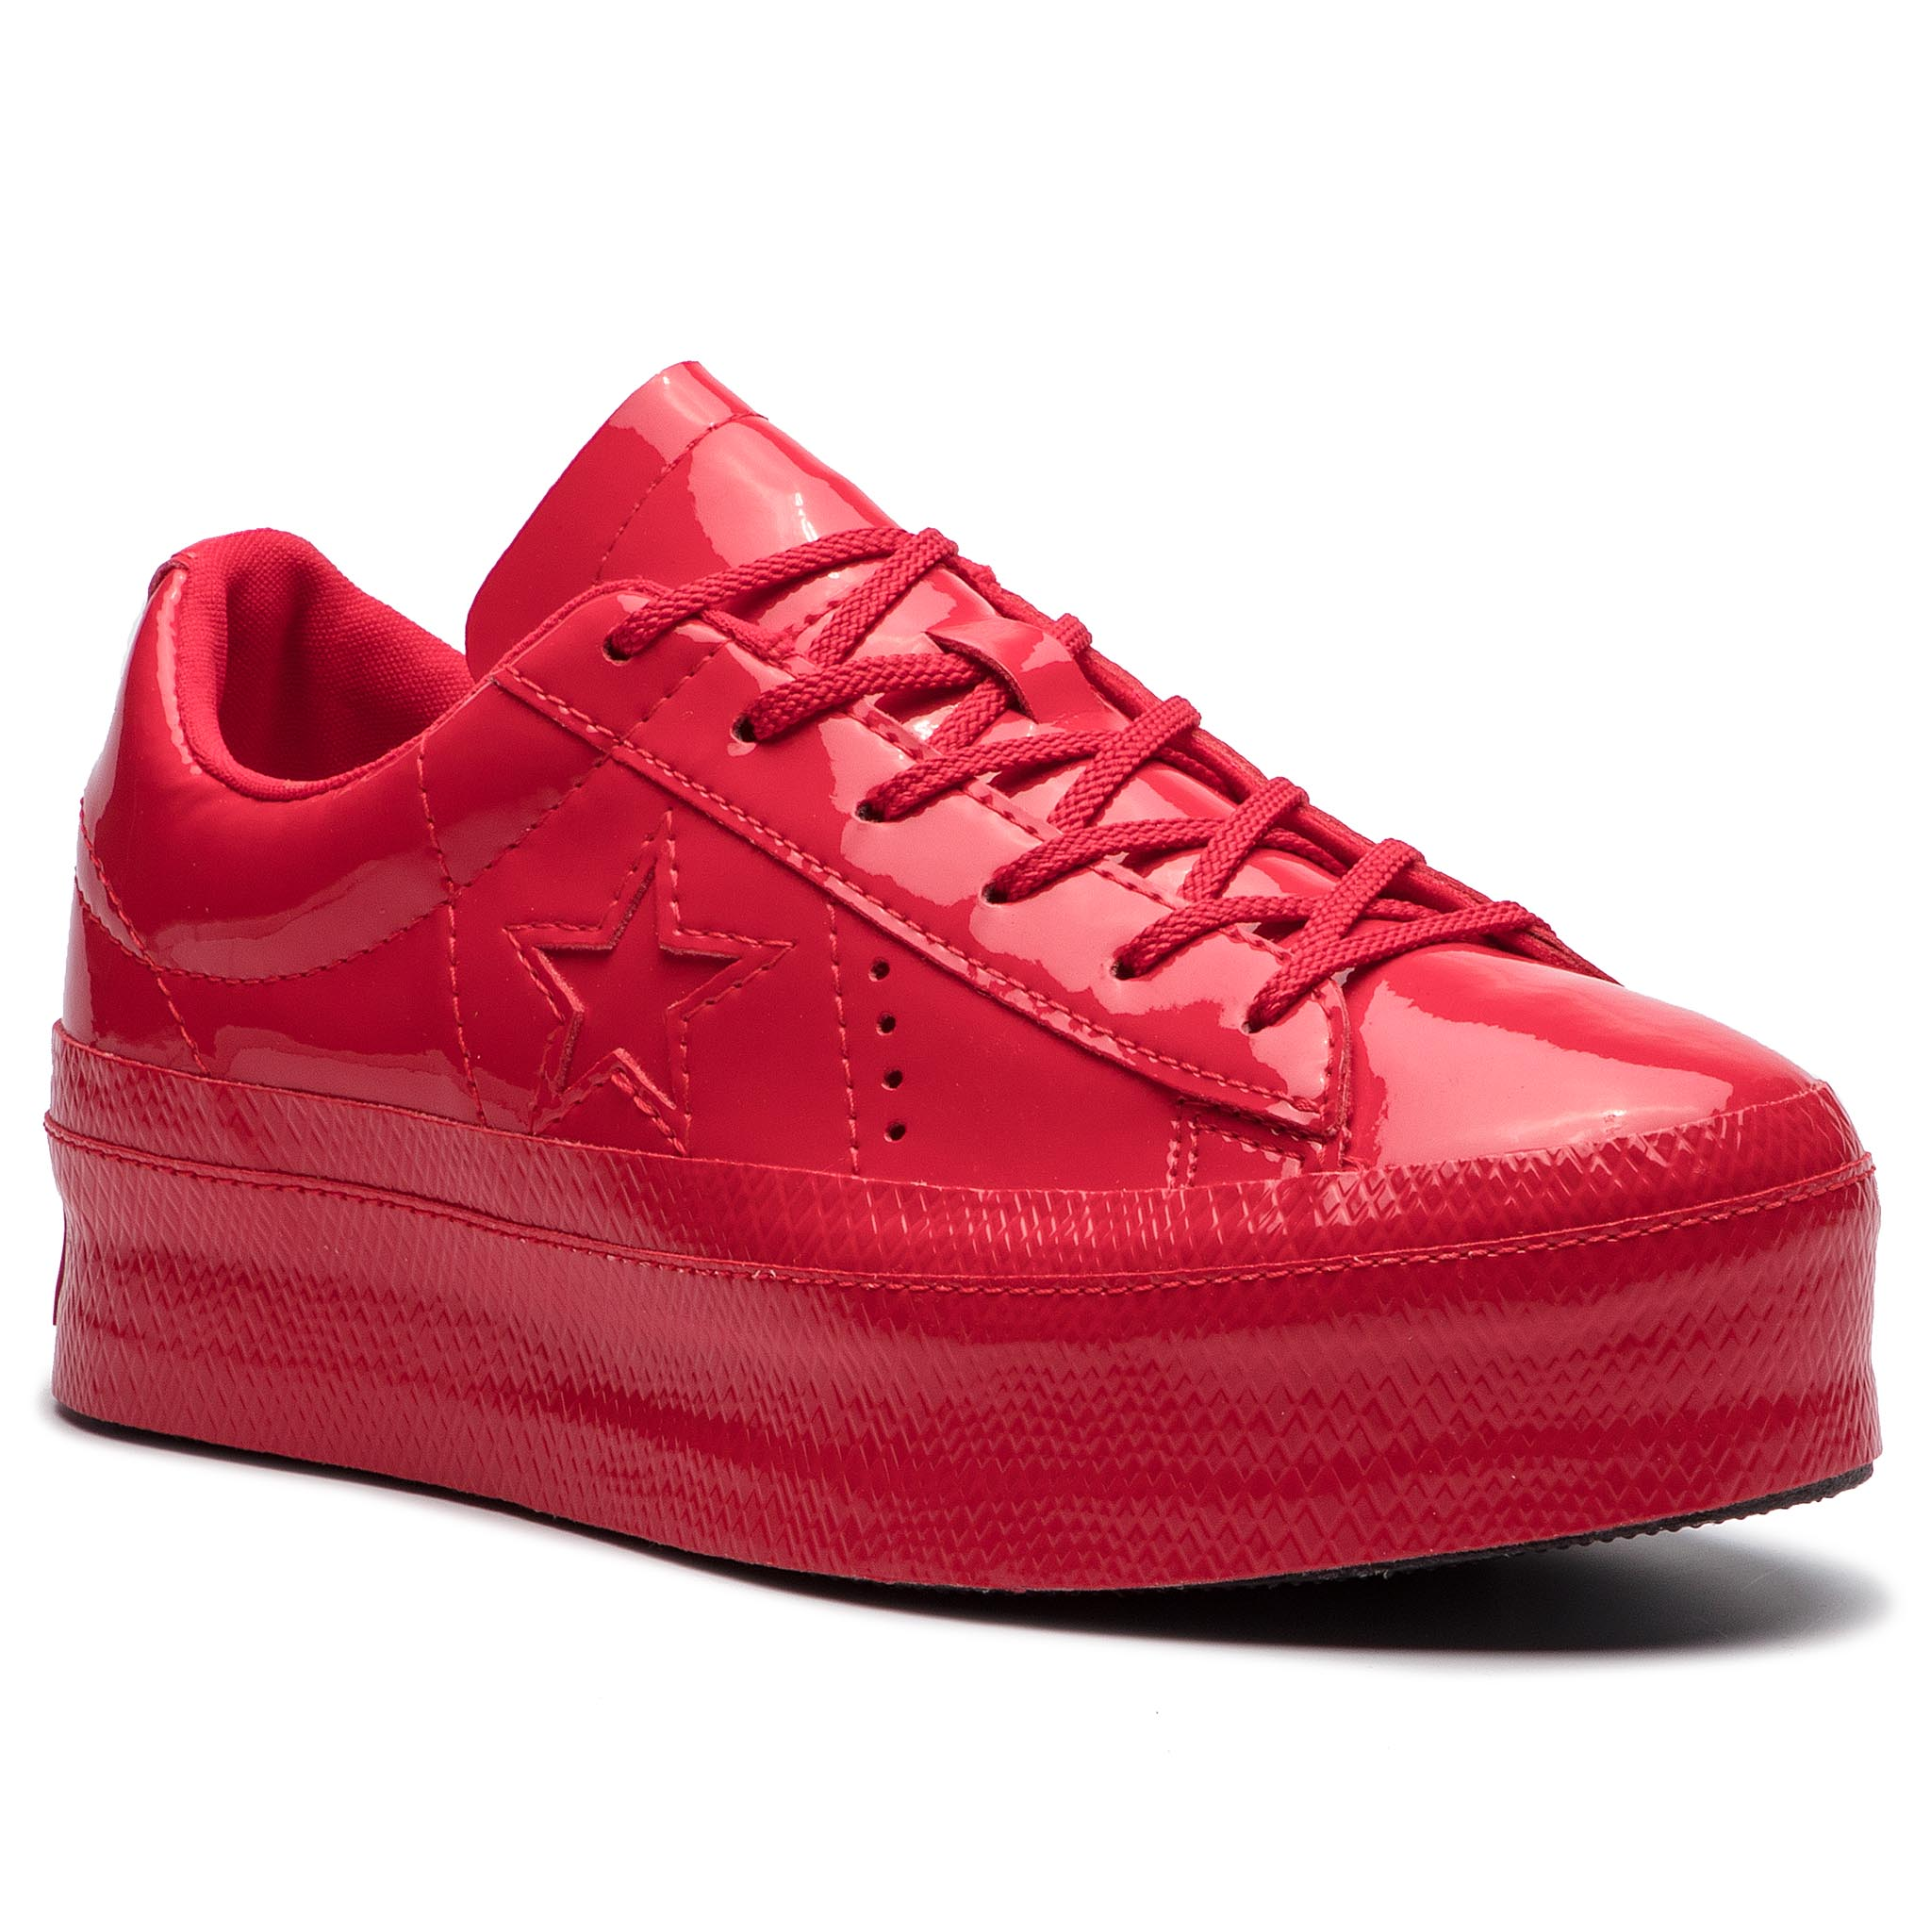 Sneakersy CONVERSE - One Star Platform Ox 562606C Cherry Red Cherry ... bdcb30f7977